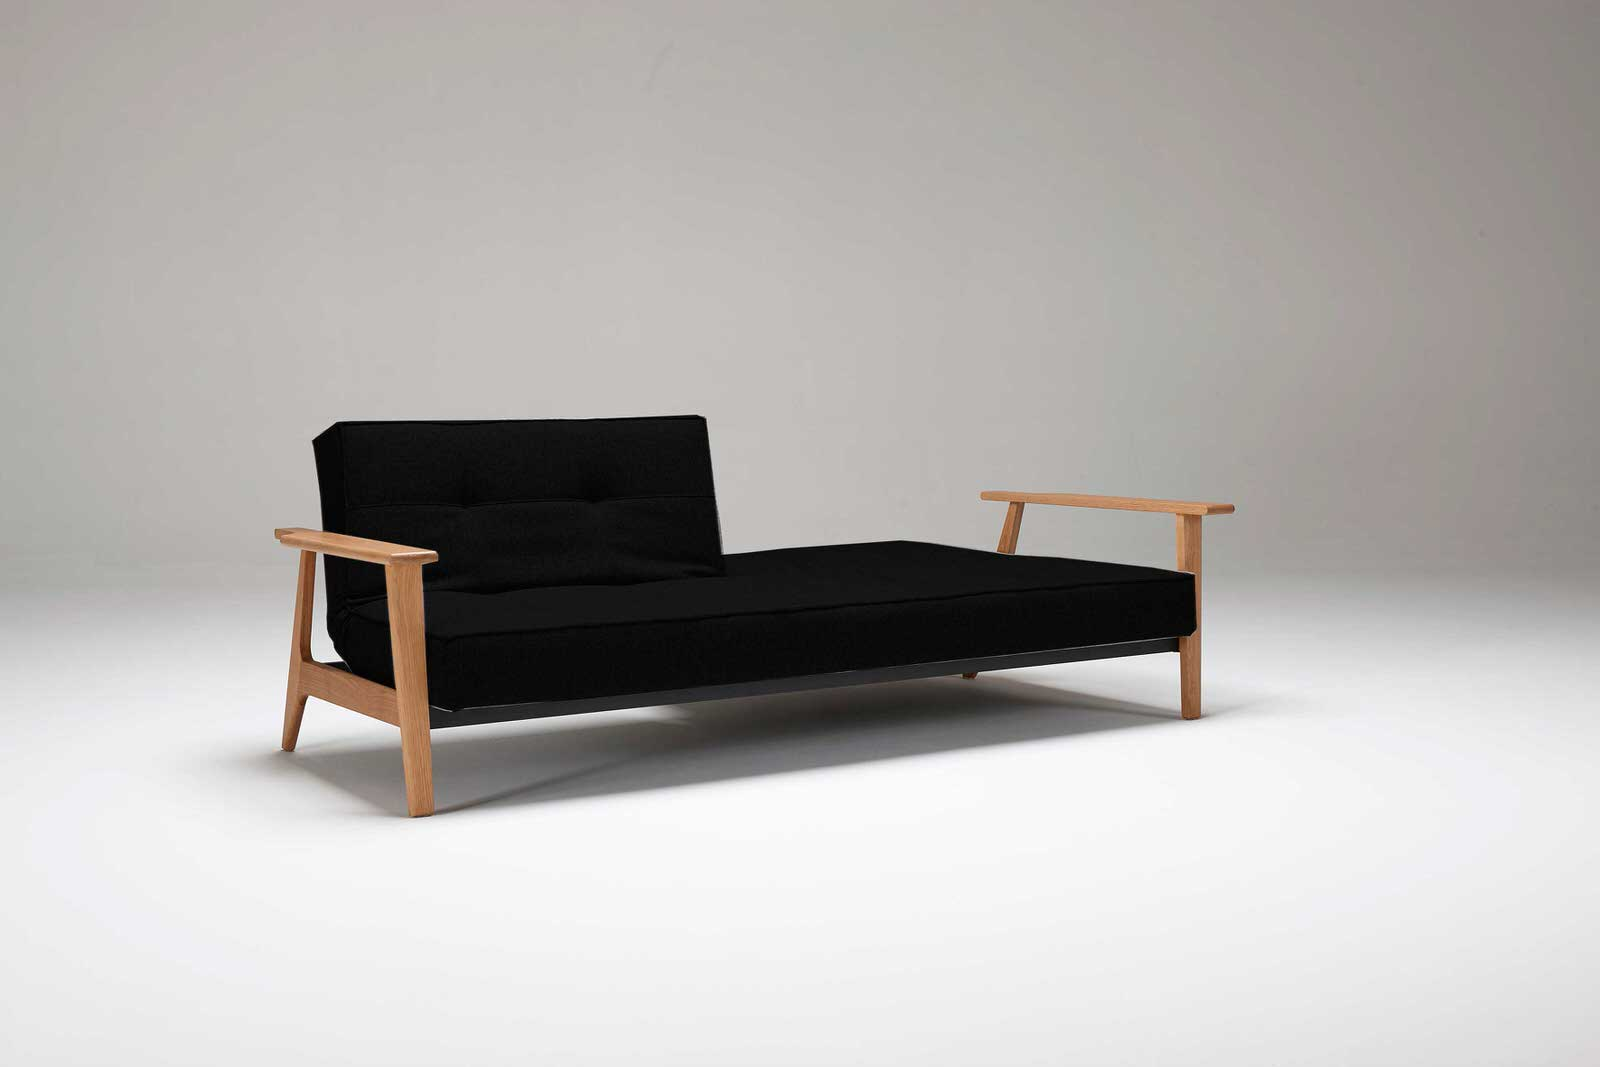 Splitback sofa bed w frej arms black leather textile by for Black divan bed with mattress